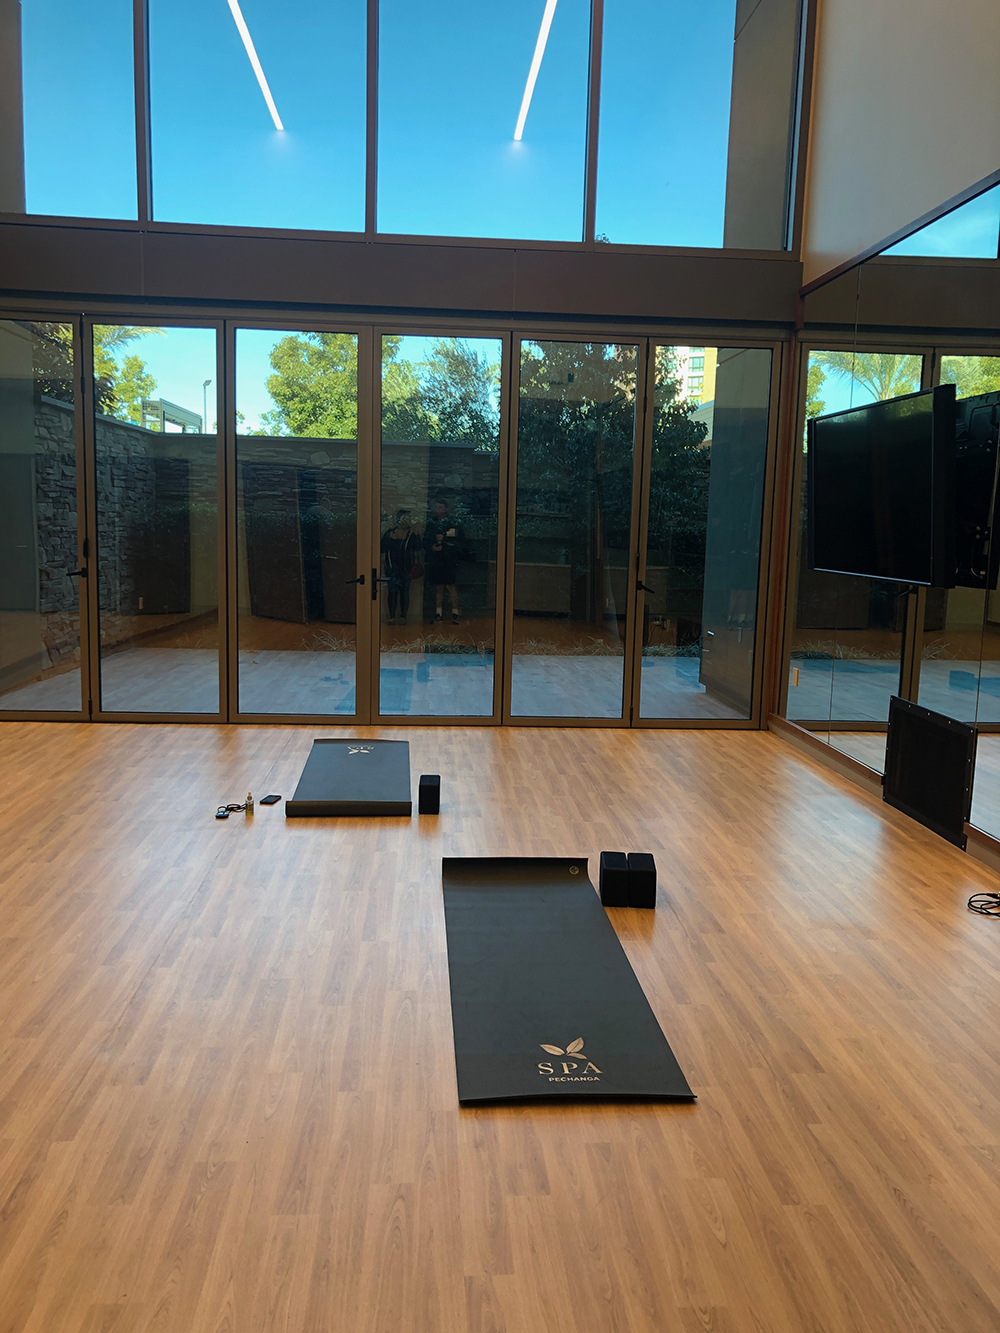 The Spa's fitness facility includes a state-of-the-art gym, studio and outdoor patio.